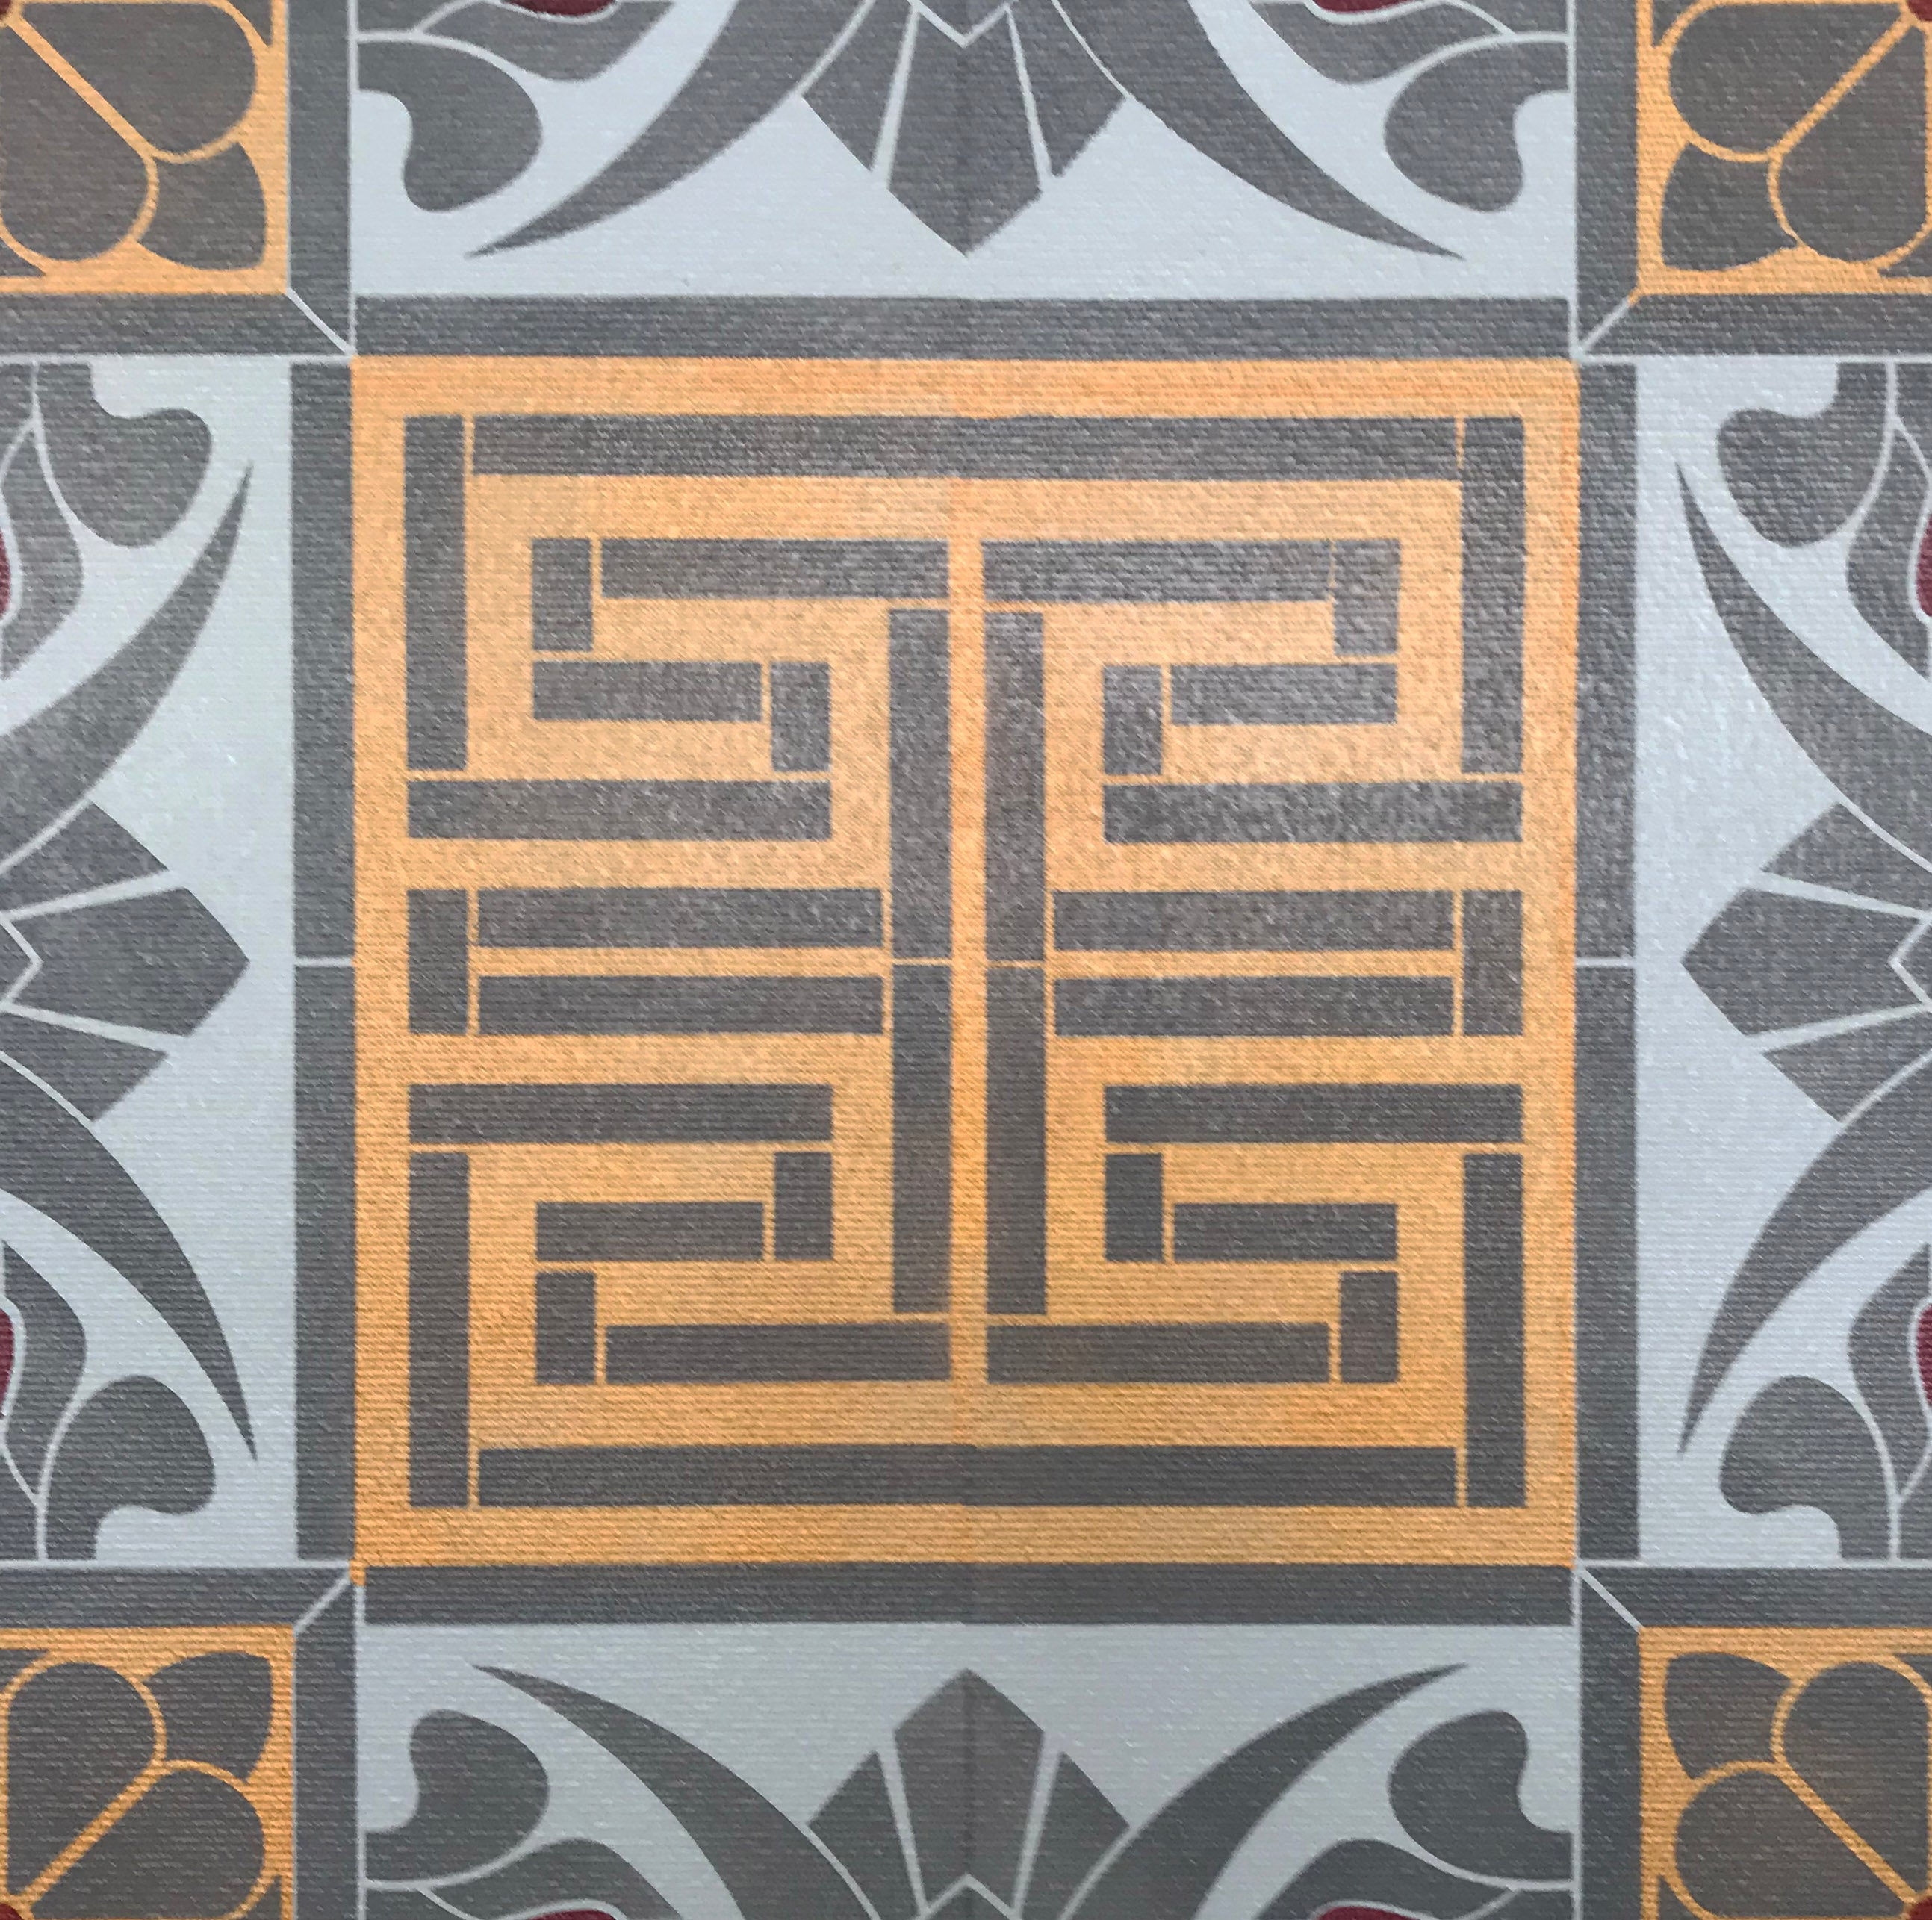 A close up of the Greek Key motif in this floorcloth.